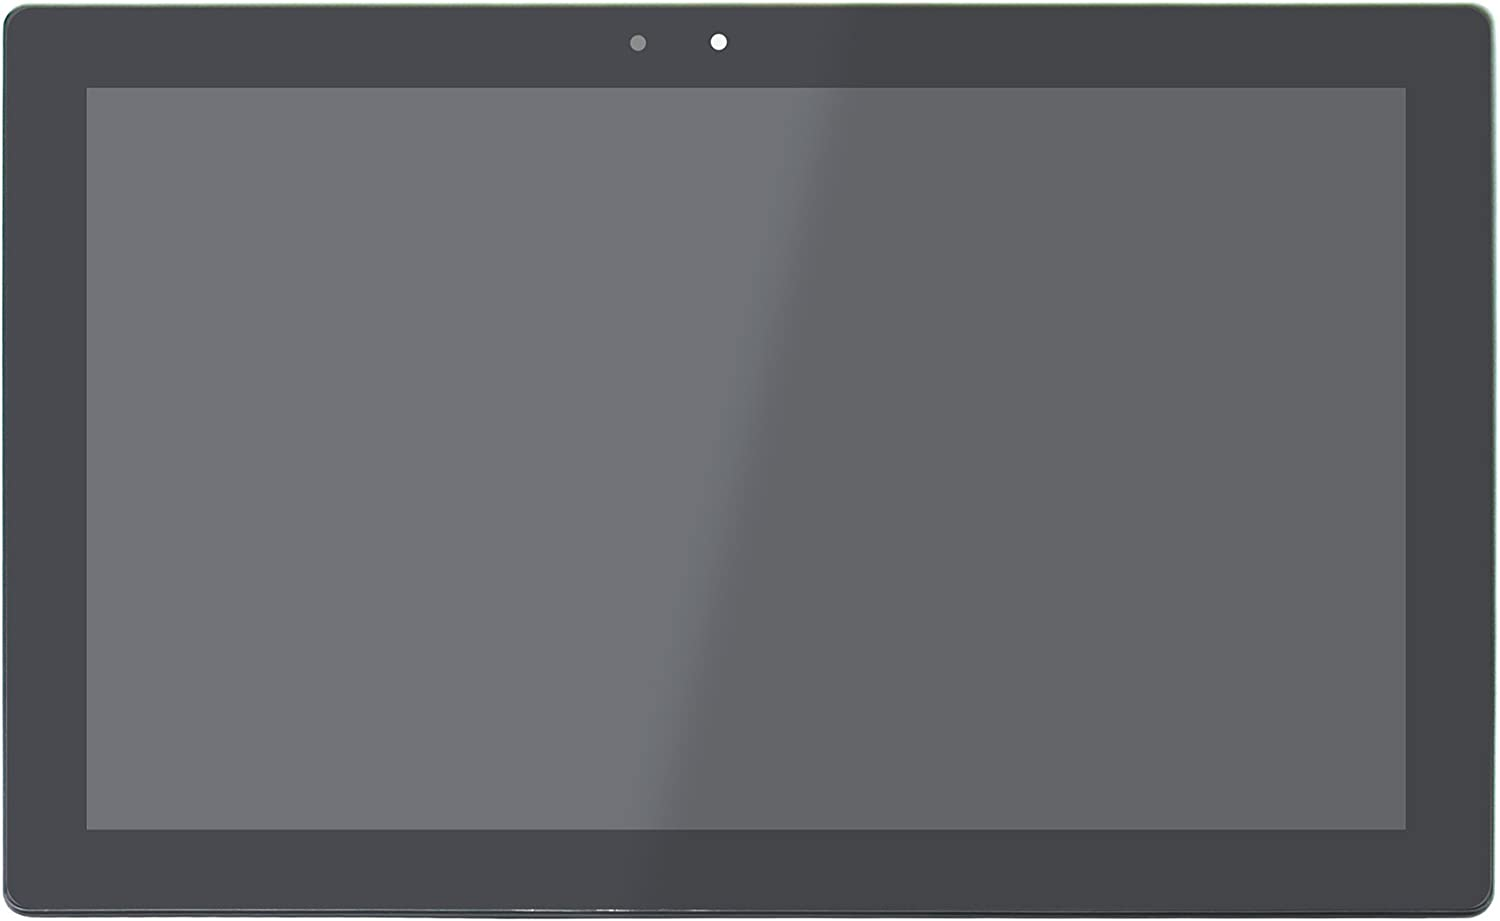 LCDOLED Compatible 99% New 12.0 inch 2160x1440 IPS LTL120QL01-001 LED LCD Display Touch Screen Digitizer Assembly + Bezel for Lenovo IdeaPad Miix4 & Miix 700 700-12ISK 80QL (with Touch Control Board)